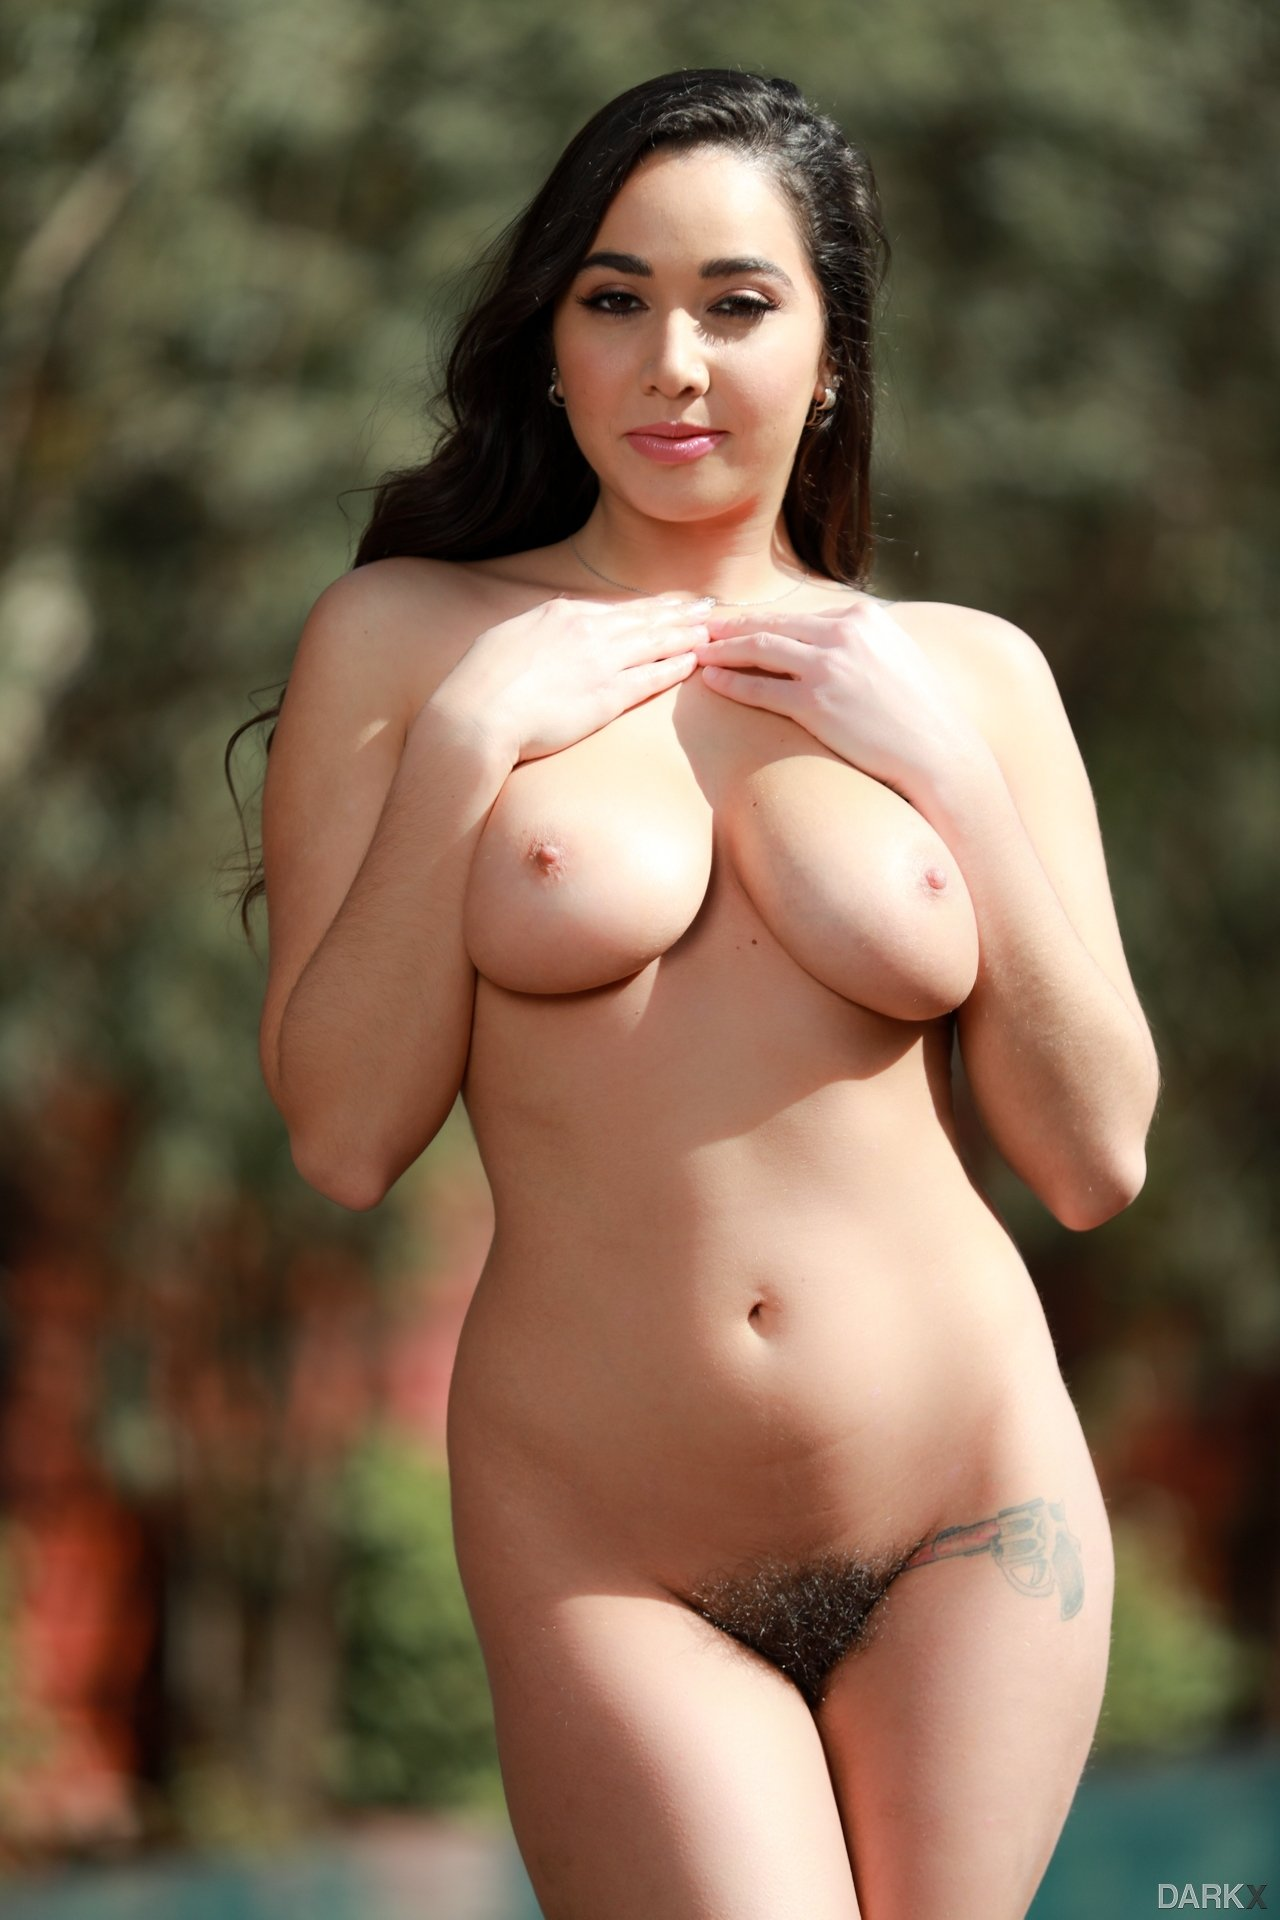 Cams4 cams nude sexy asian models